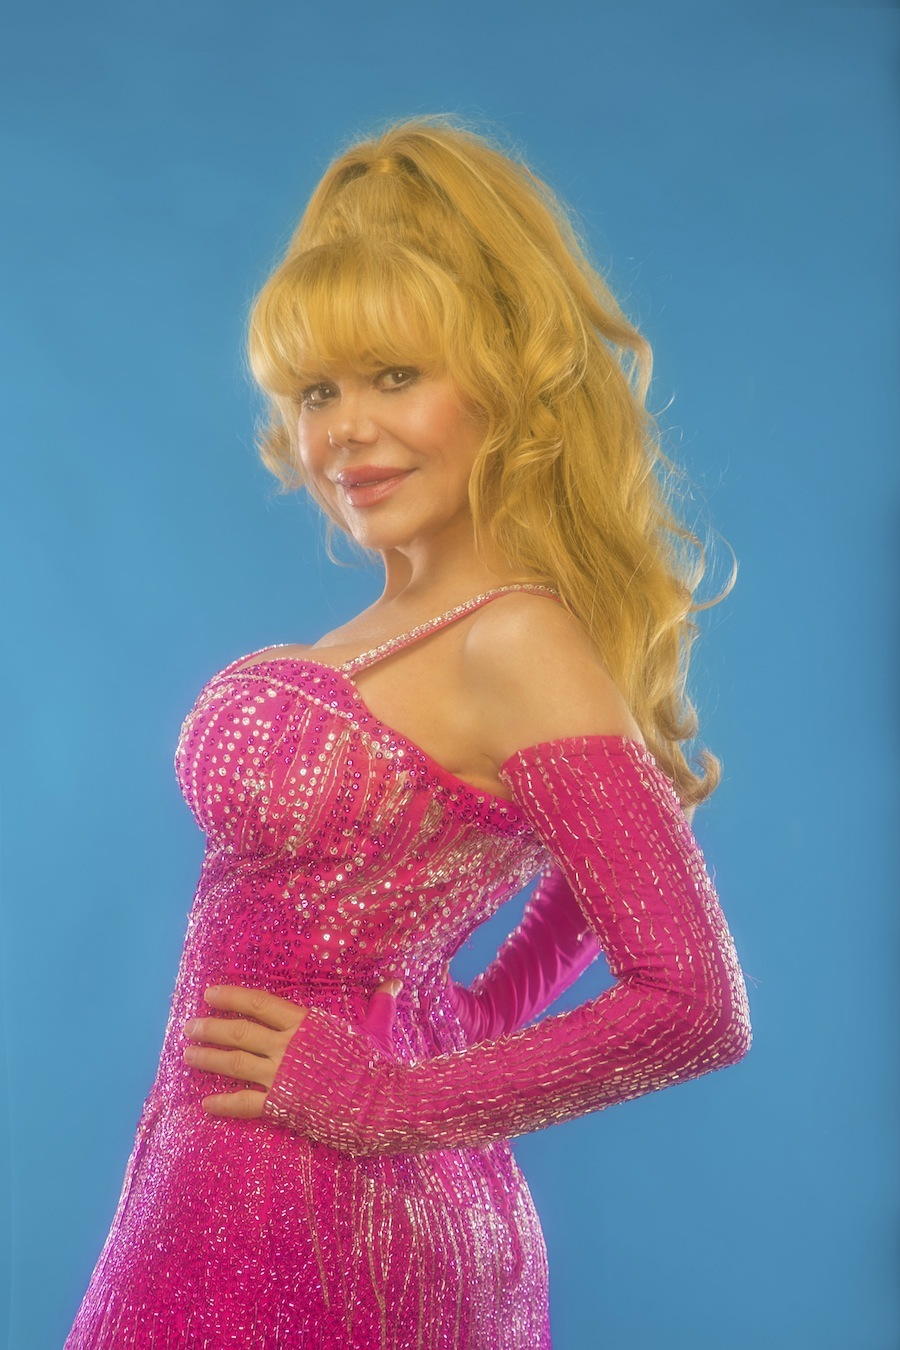 charo french meaning